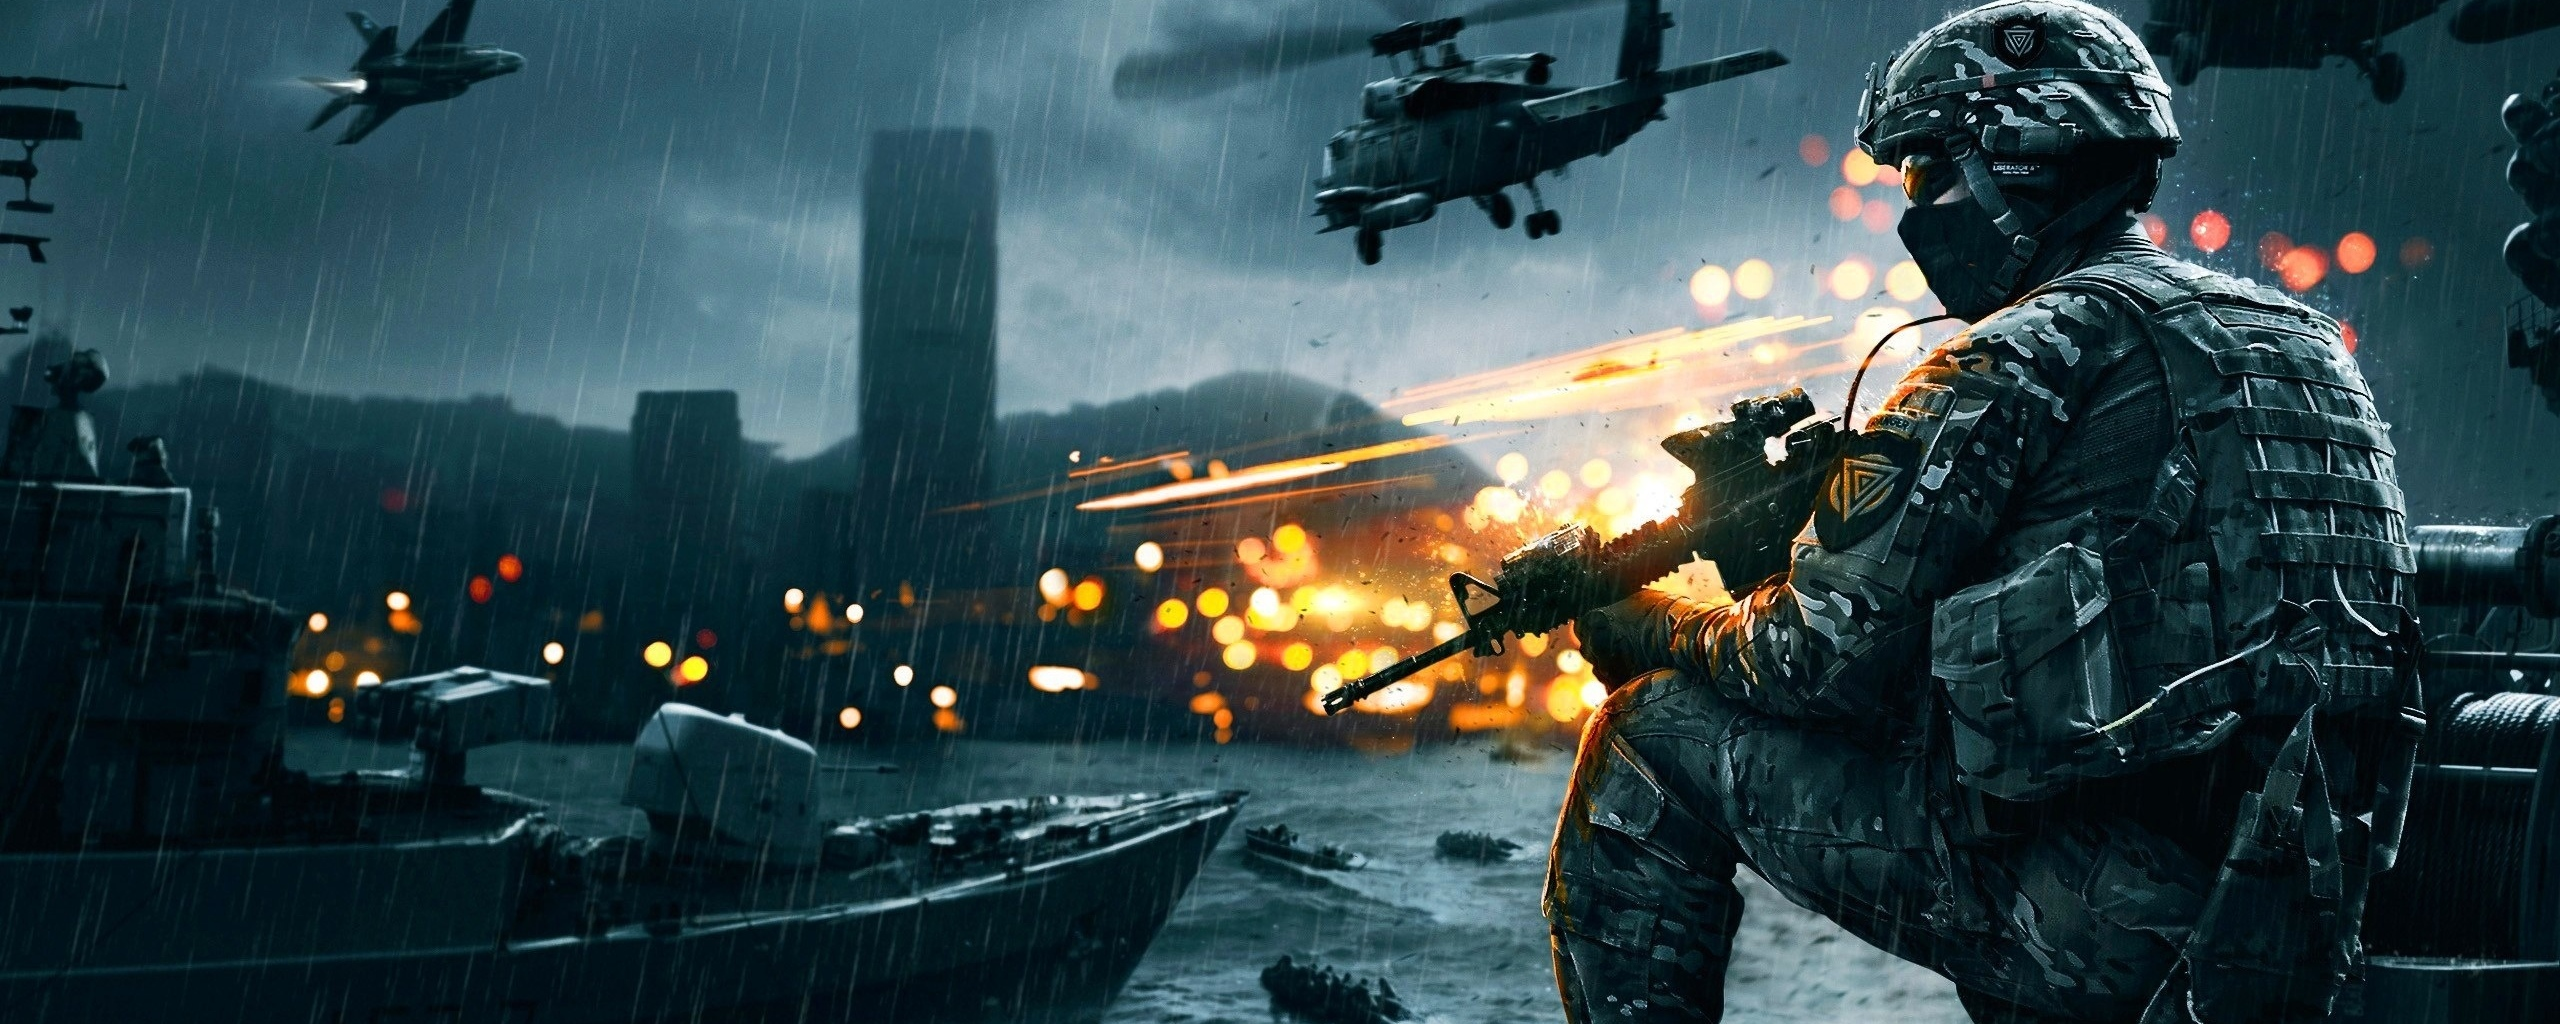 Gaming Wallpapers For Dual Monitors 3 Battlefield 4 942334